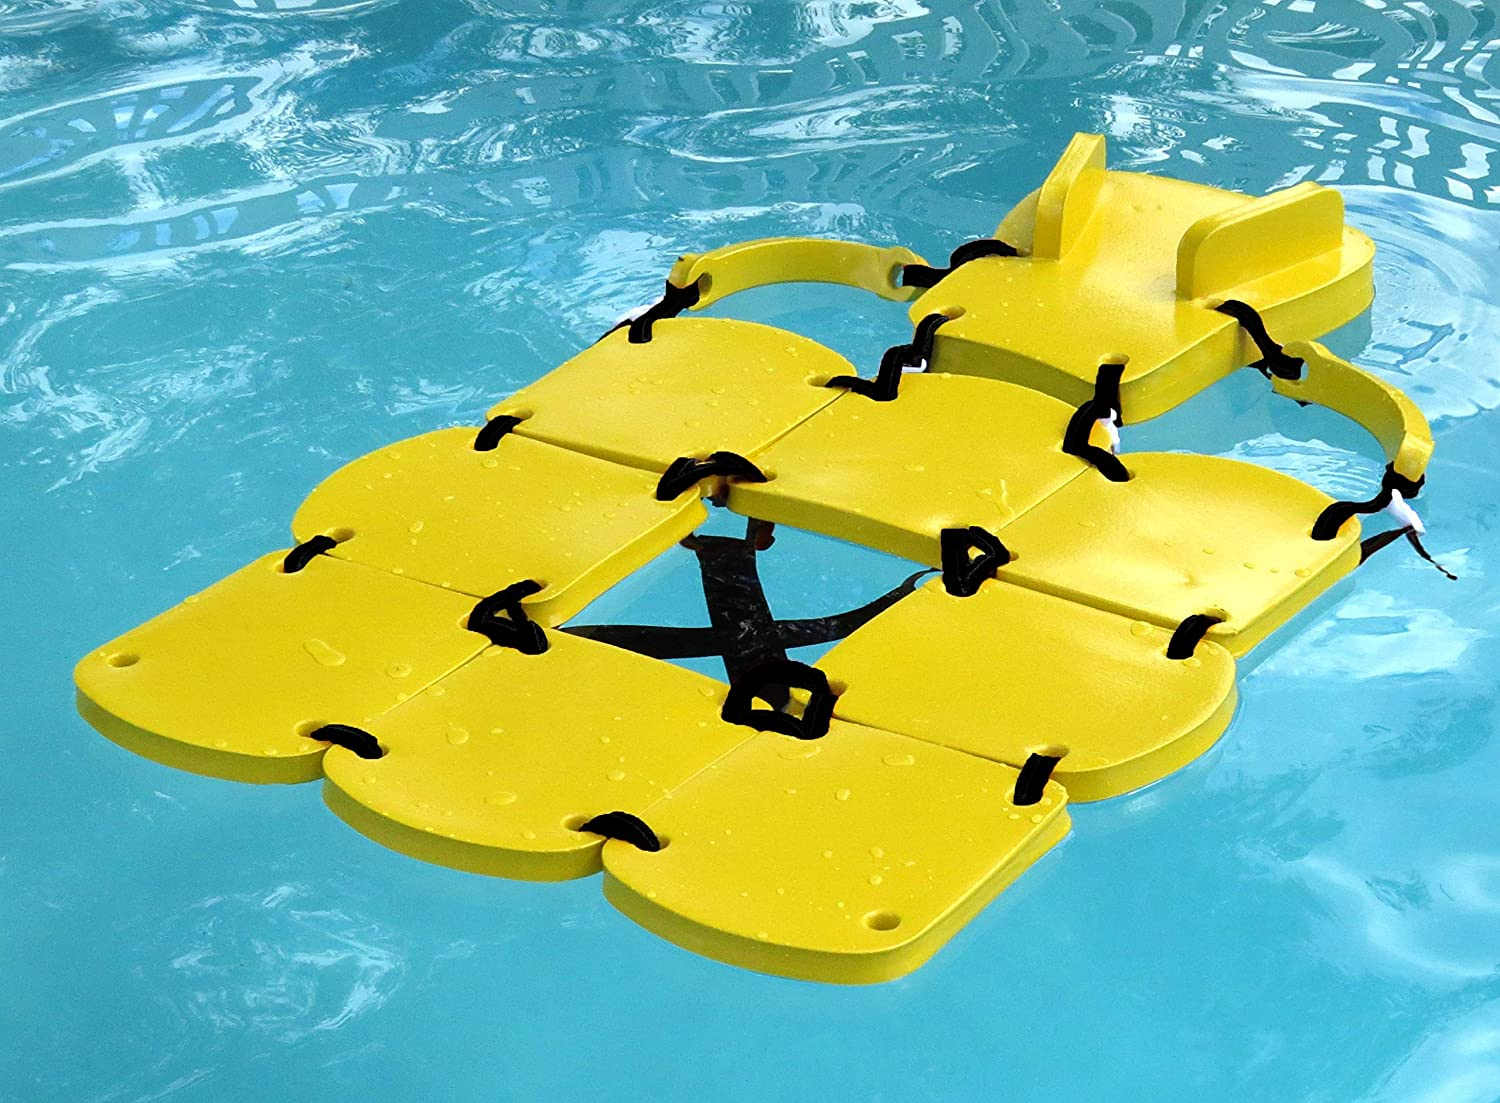 Animer and price revision Sectional 2021 autumn and winter new Raft - small